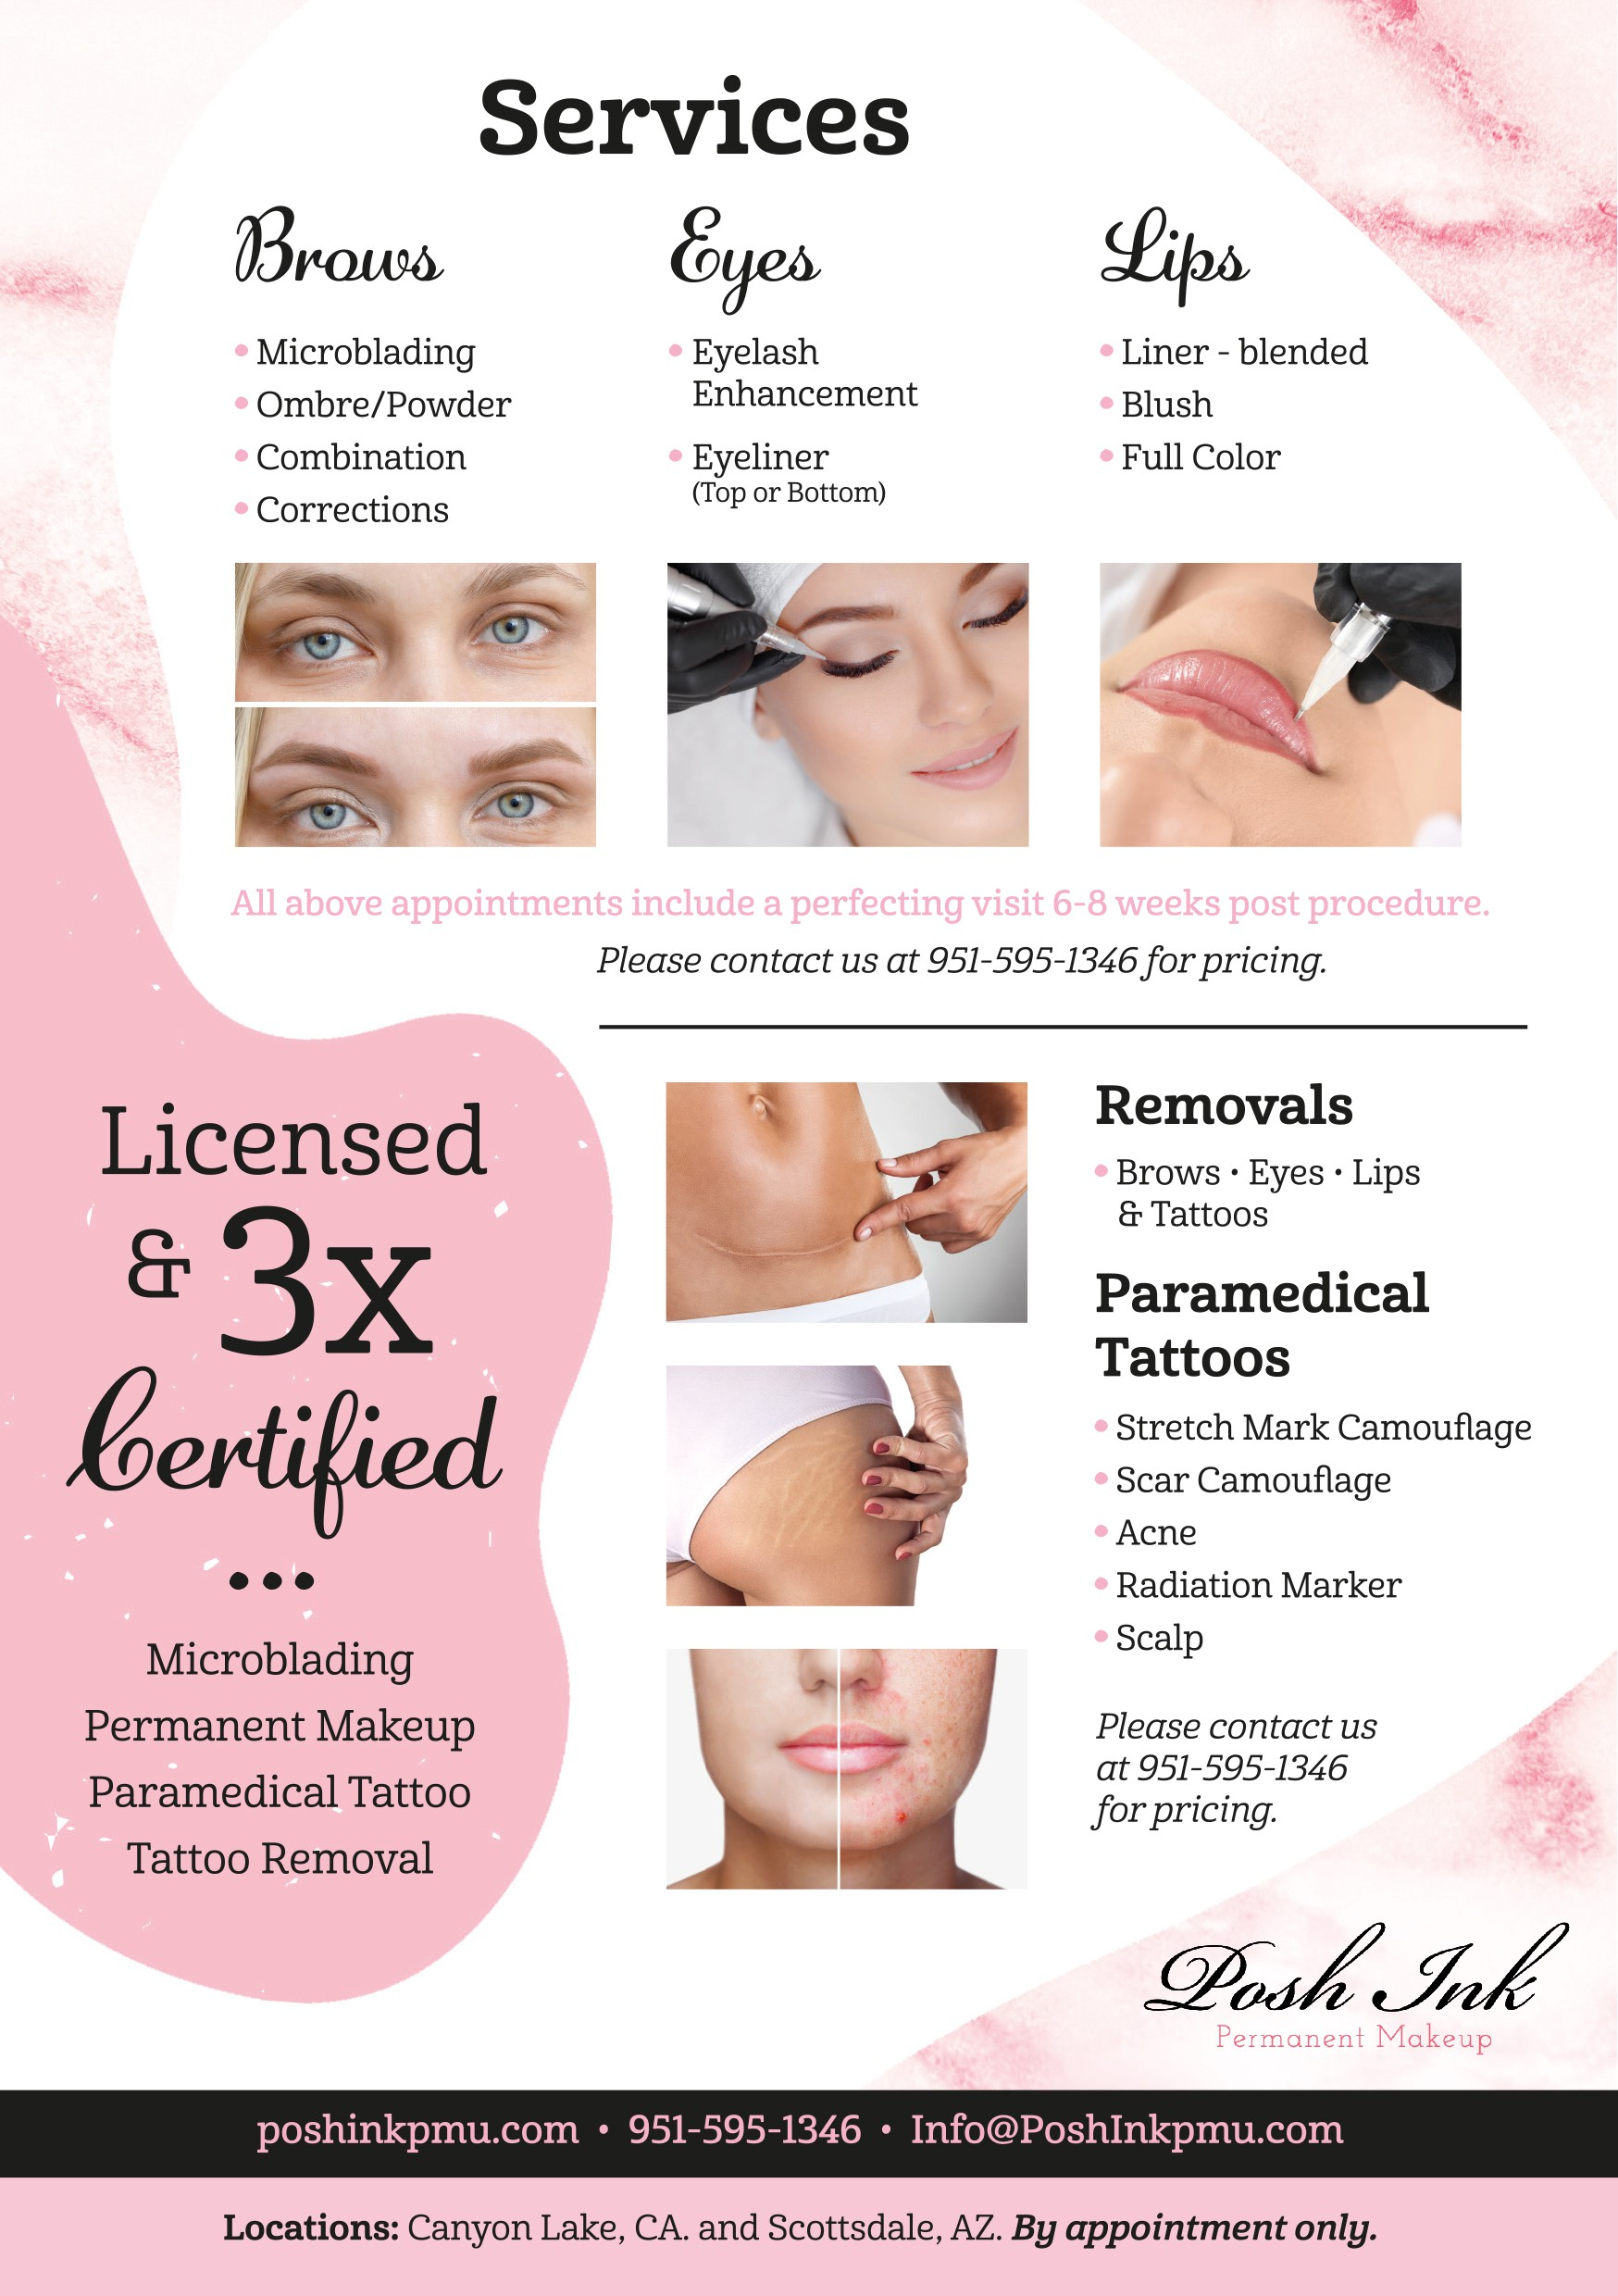 High End multi location Permanent Makeup/Paramedical Tattoo Business to appeal to women